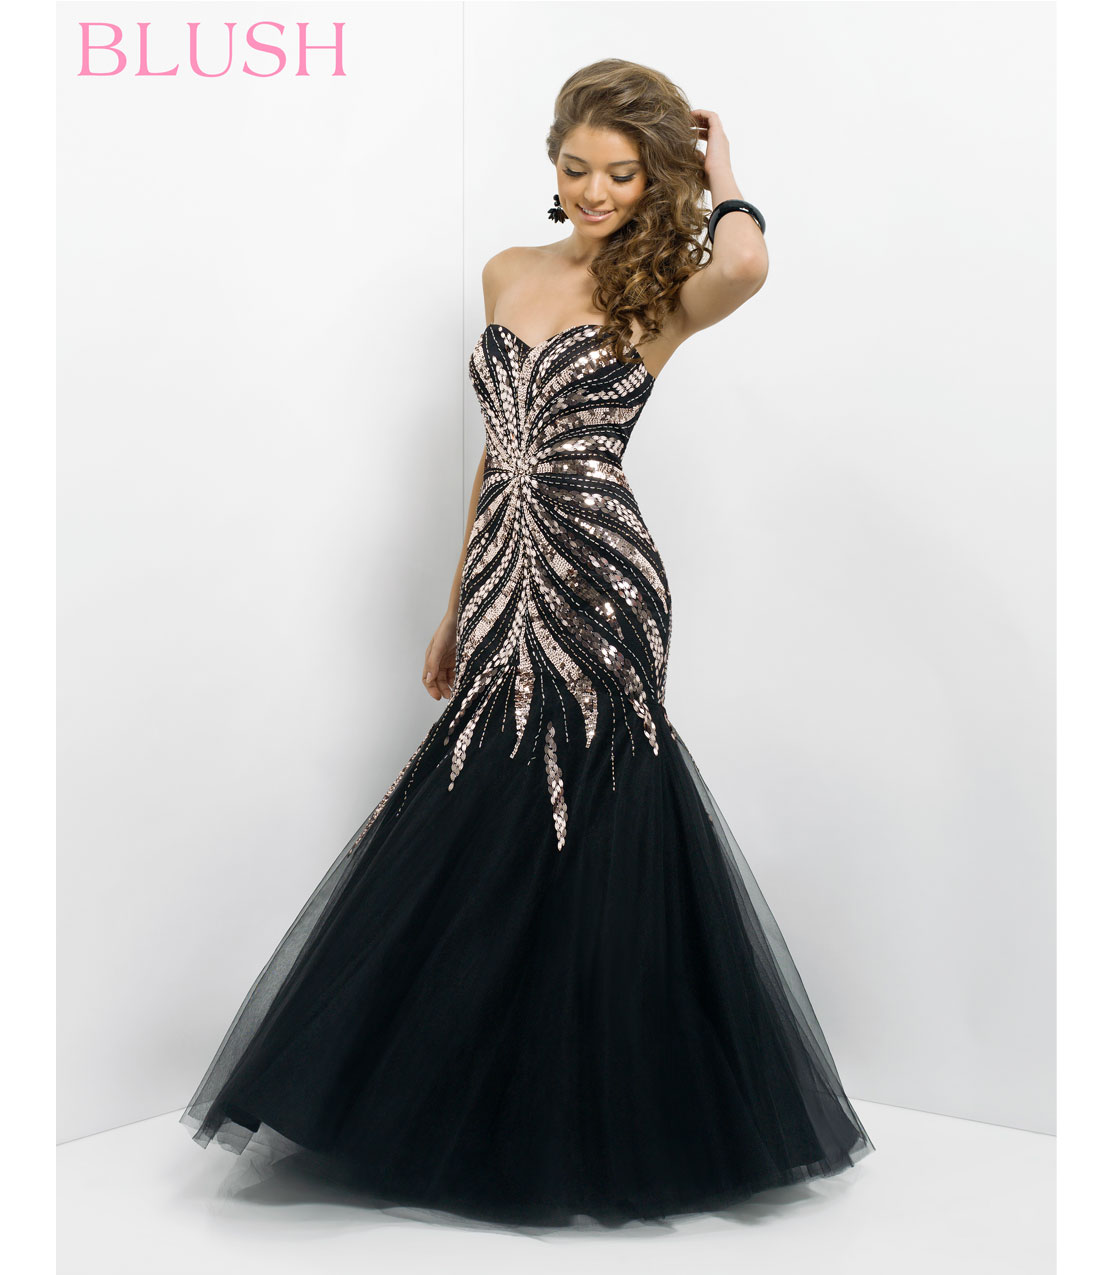 gold and black prom dresses 2014